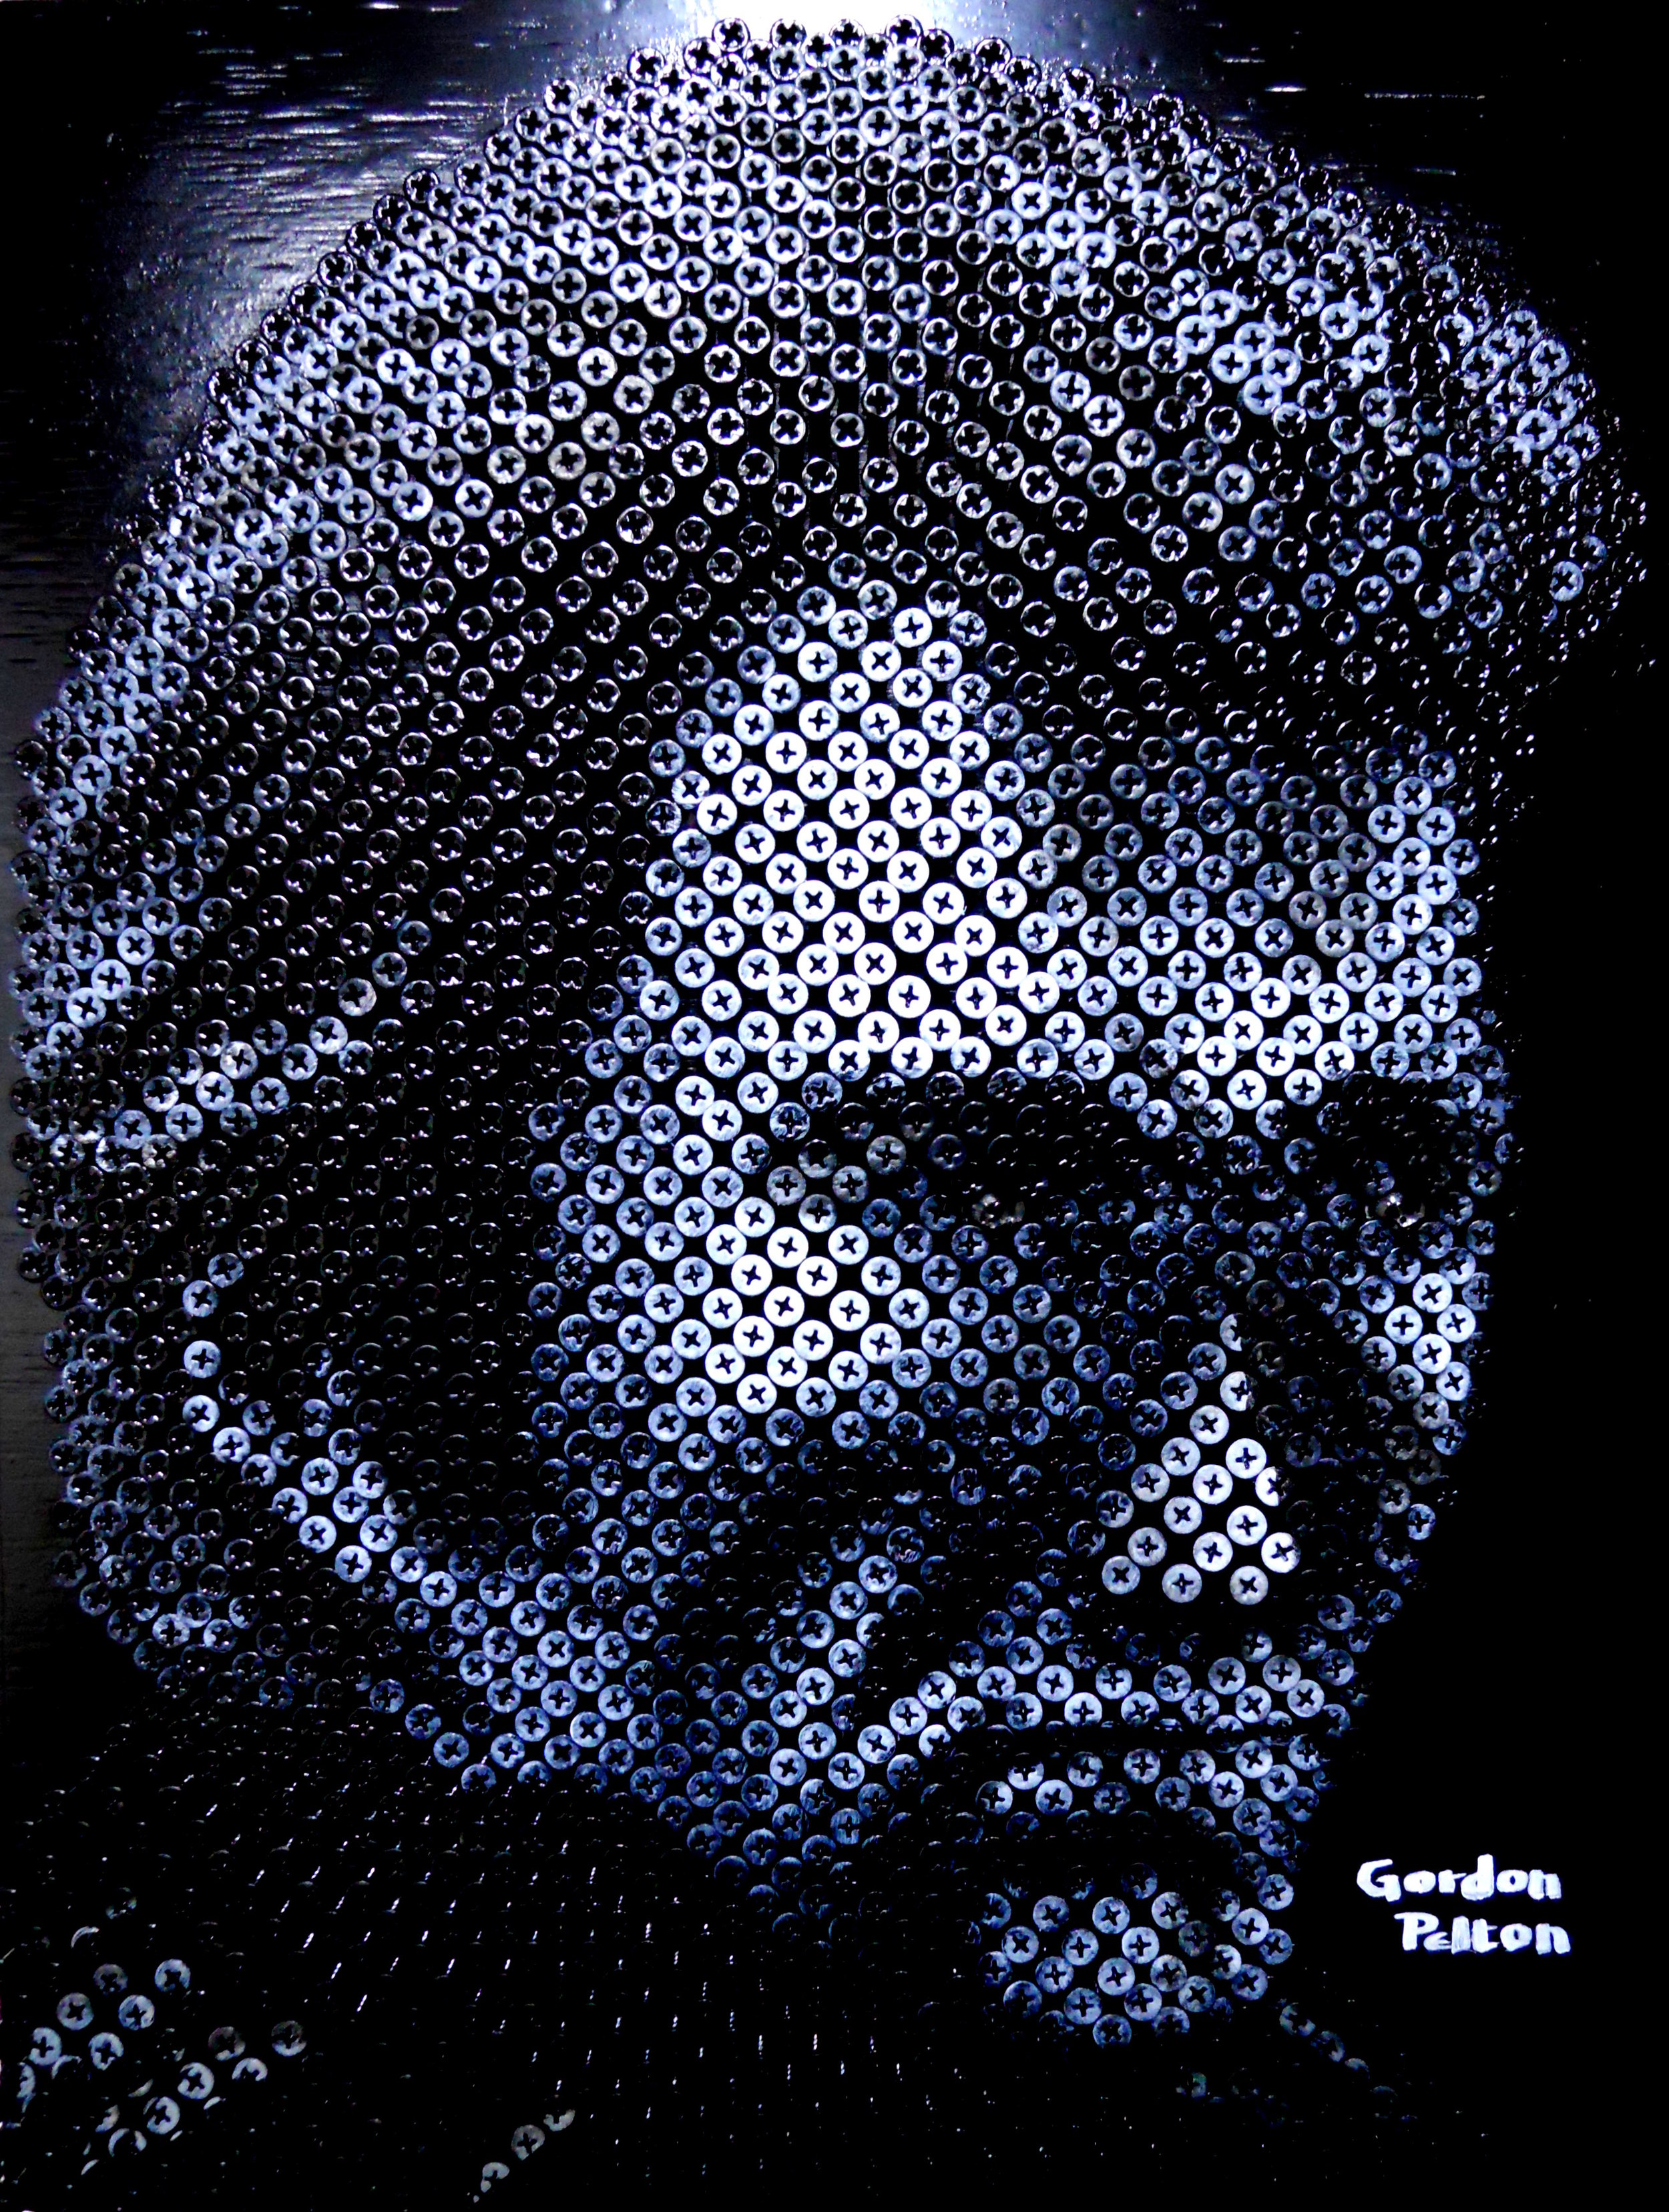 """""""Dirty Harry (Clint Eastwood)"""" in Bas Relief   17 x 22 Screws in Plywood, Framed $2500   PLACE ORDER"""